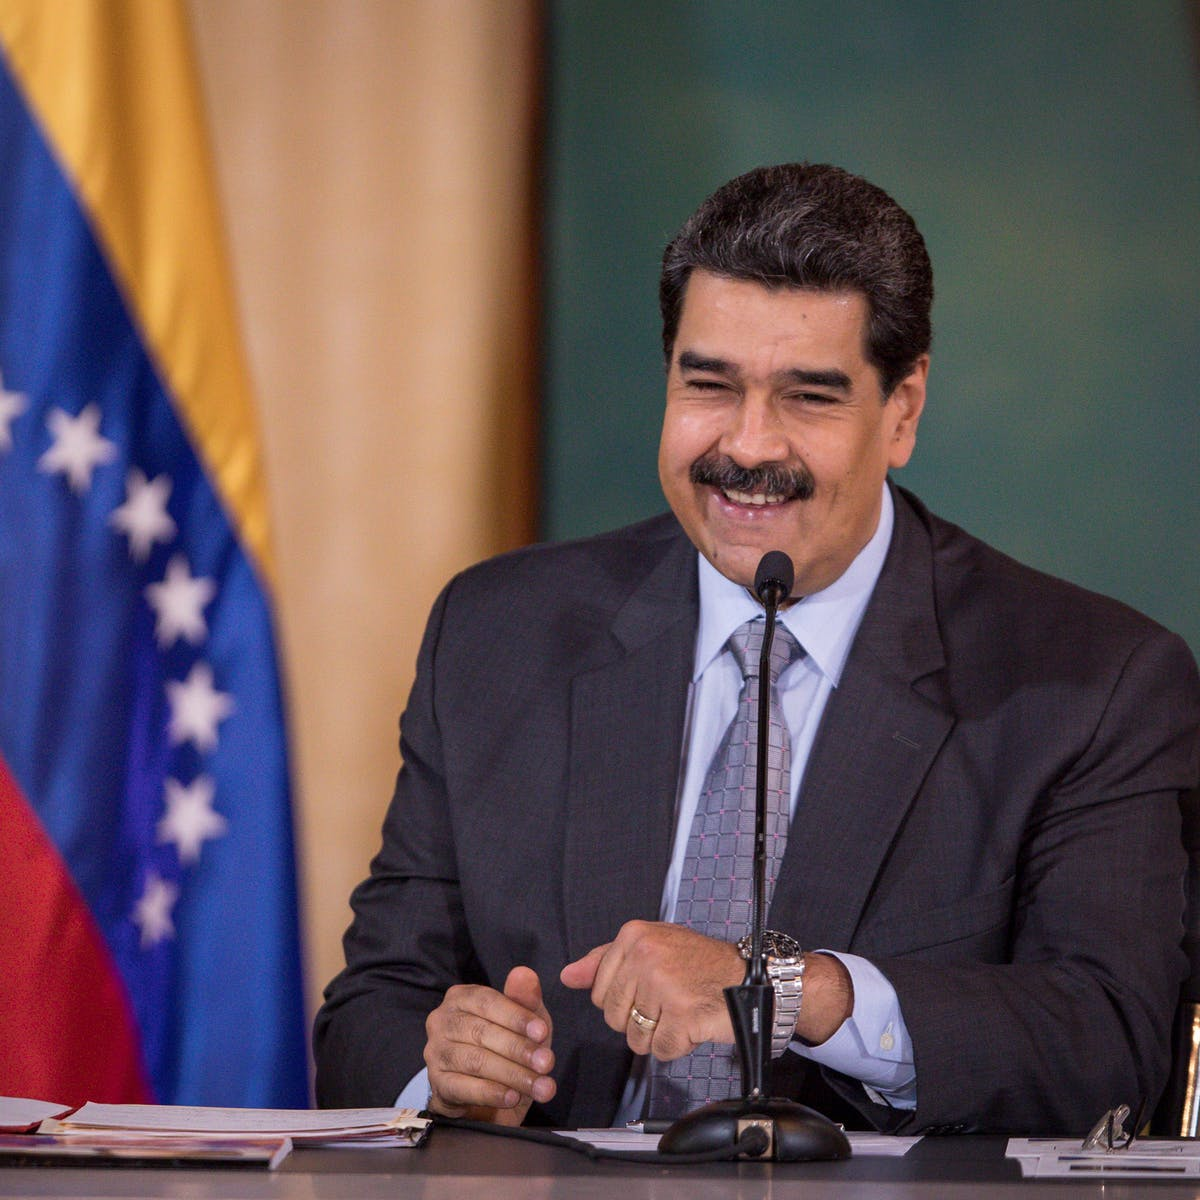 Latin America History Of Treaty Used To Impose Sanctions On Venezuela Shows It S A Clumsy Way To Advance Democracy